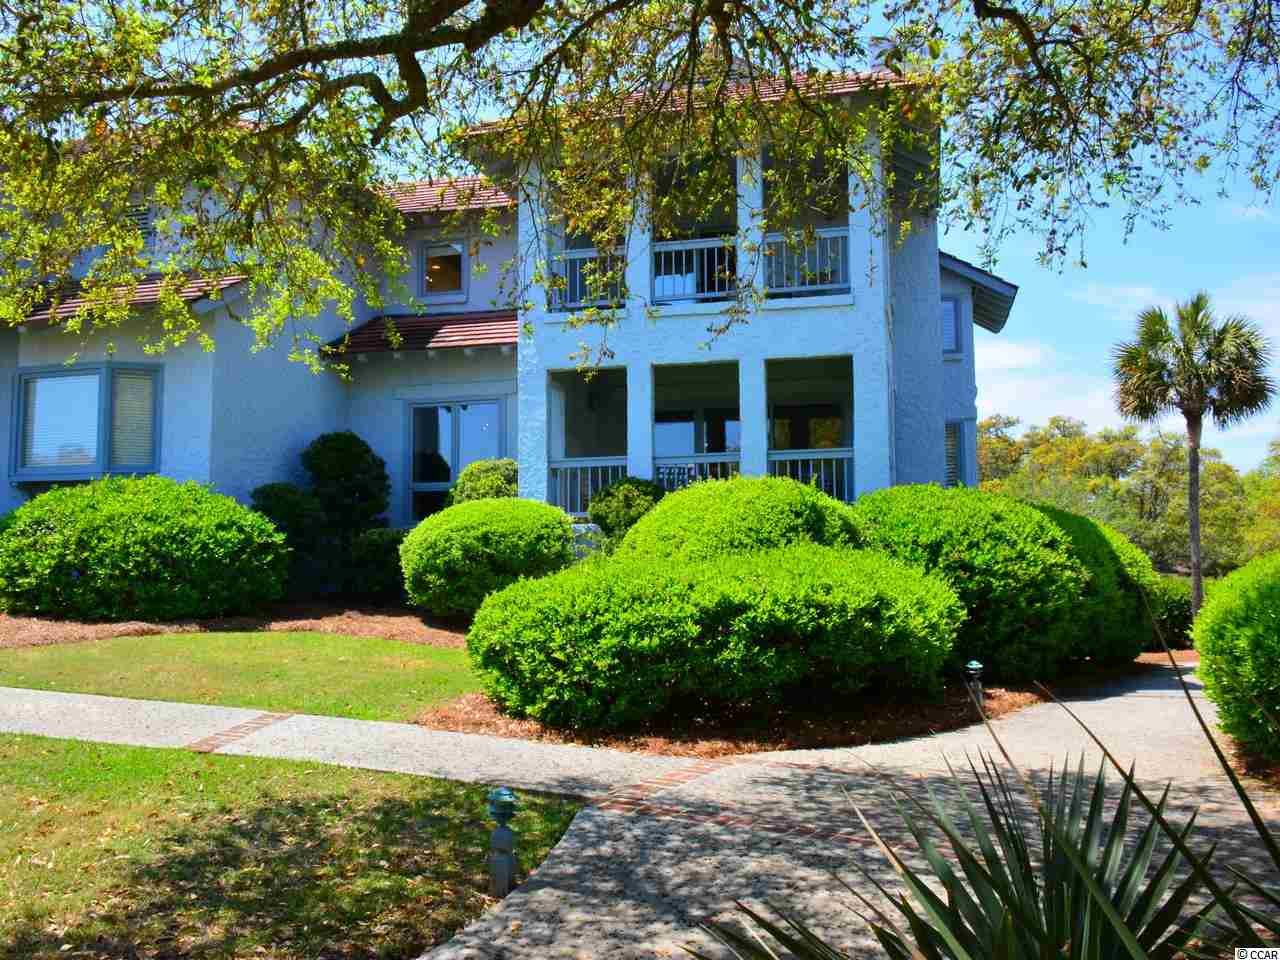 Ocean View,End Unit Condo in Debordieu : Georgetown South Carolina